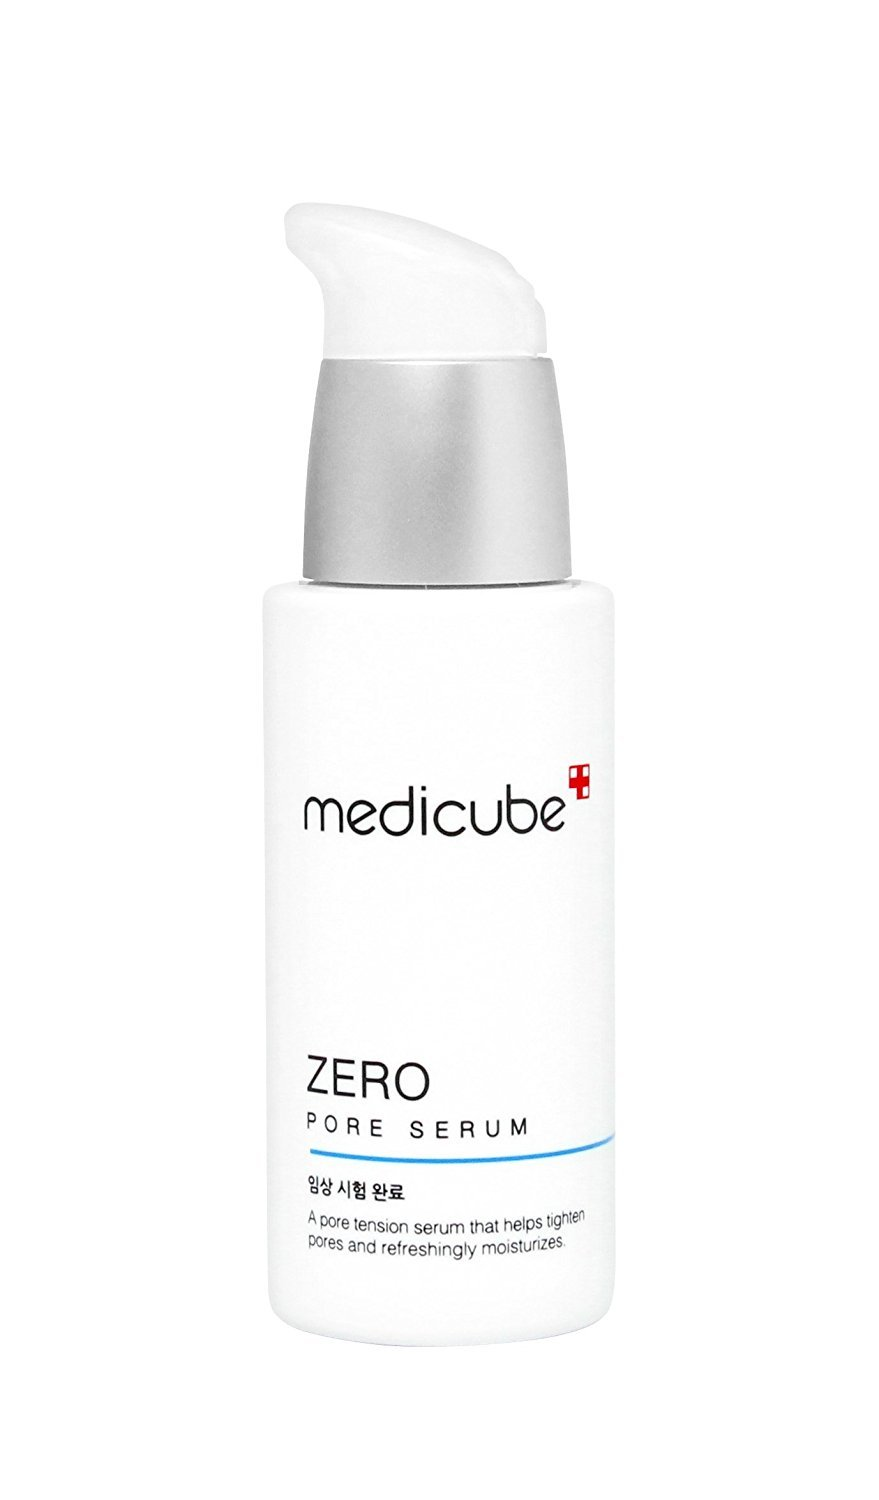 Medicube Zero Pore Serum 27 ml